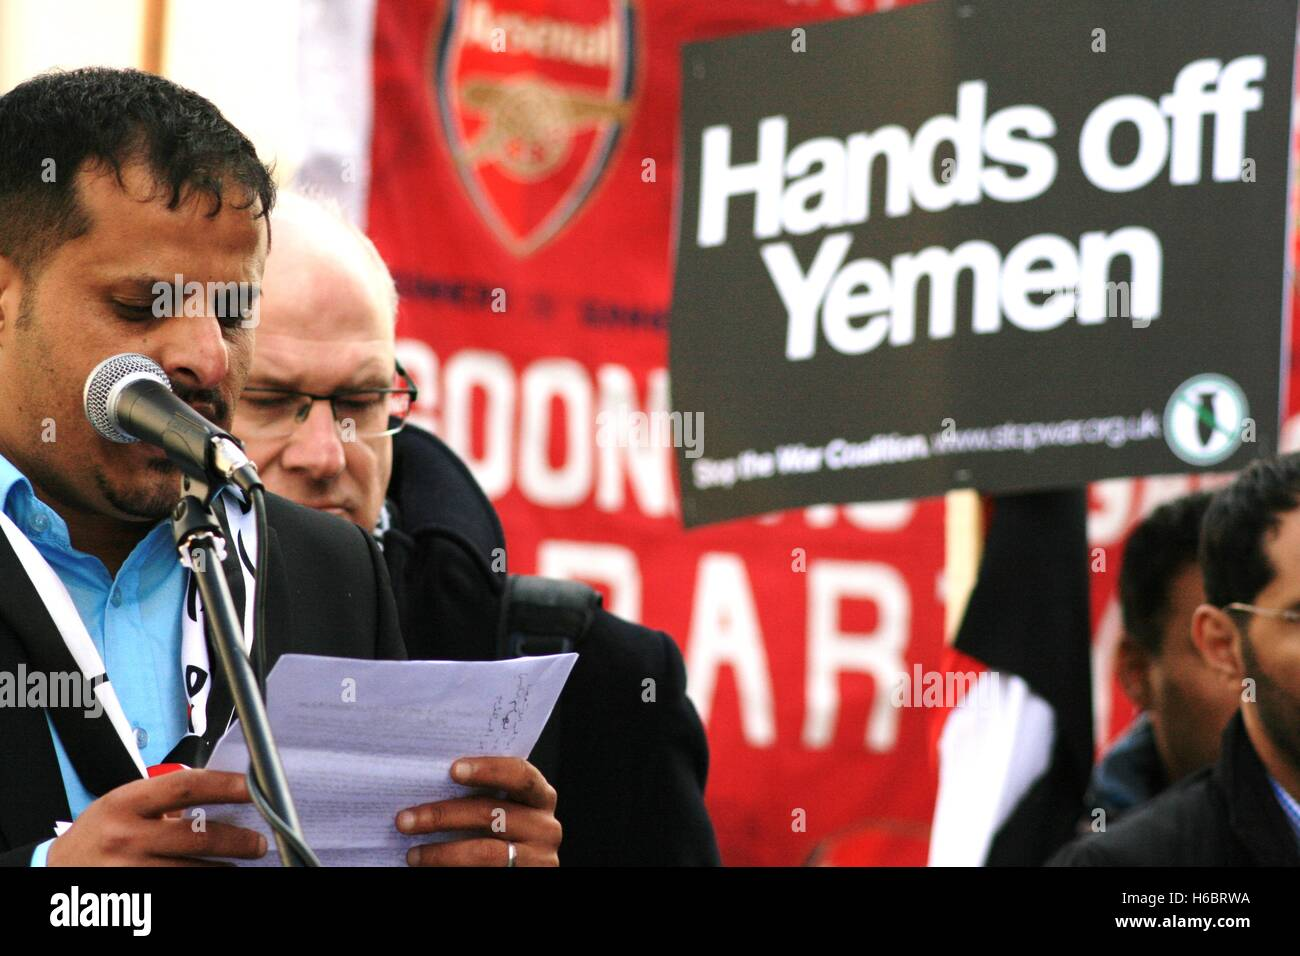 A man speaks in solidarity with the people of Yemen outside of the Saudi Arabian embassy in London, as thousands - Stock Image